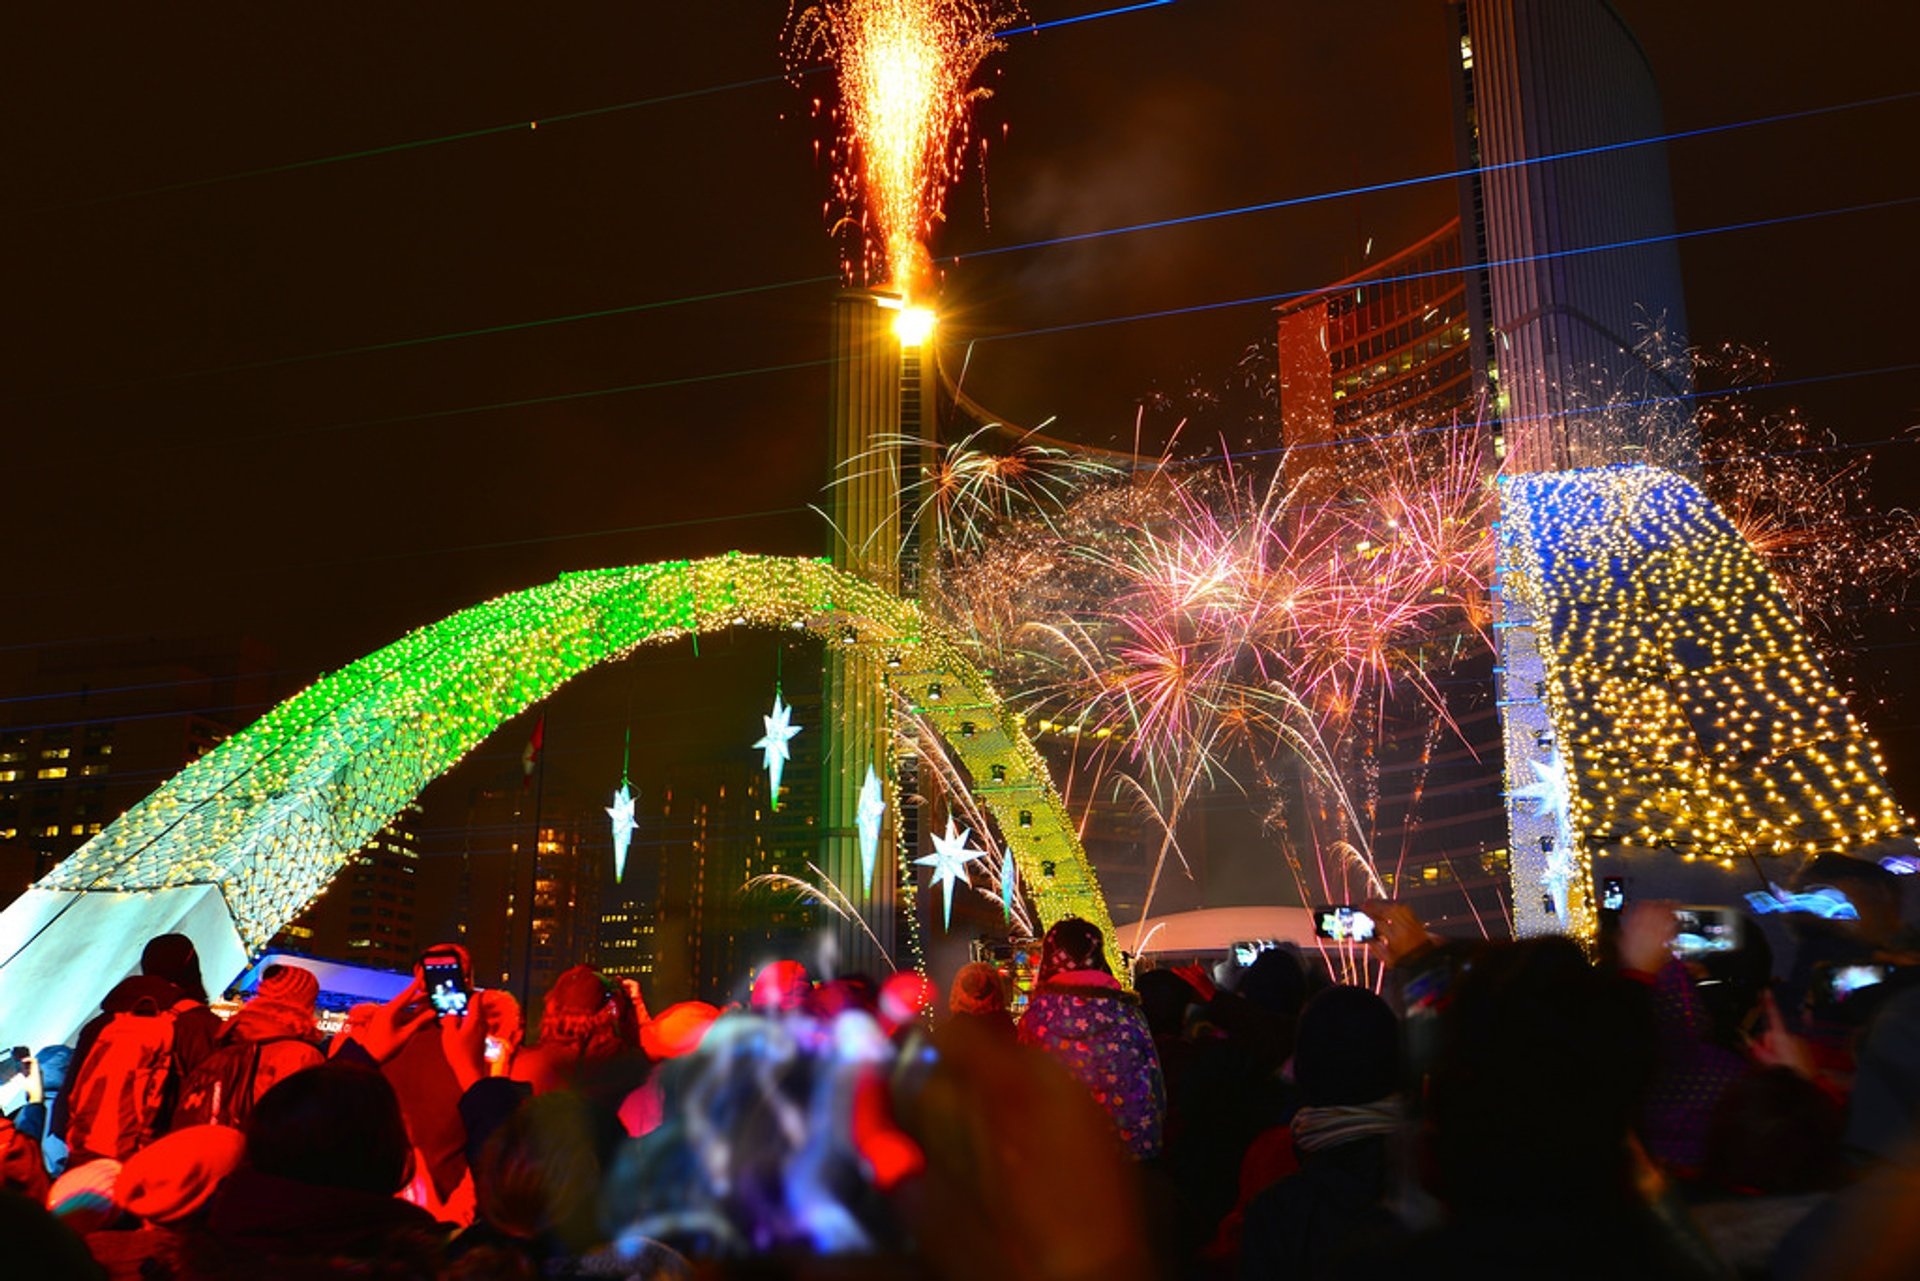 Cavalcade of Lights in Toronto 2019 - Best Time